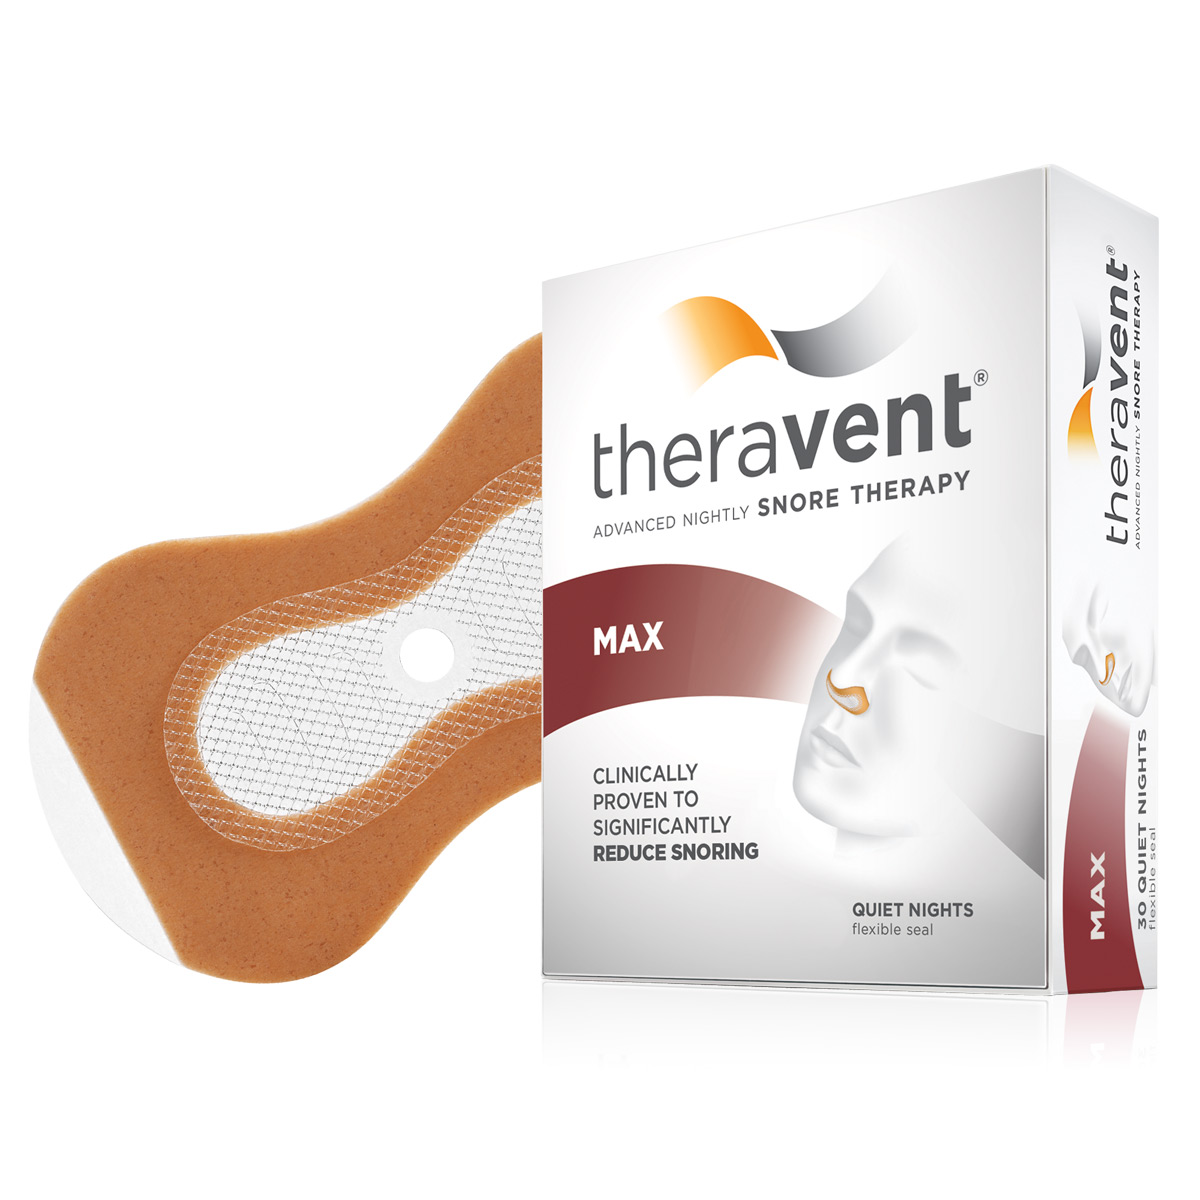 If you're fed up with snoring, don't give up. Get tough on snoring with Theravent®, the first and only FDA-approved device to use EPAP technology. See the science behind .